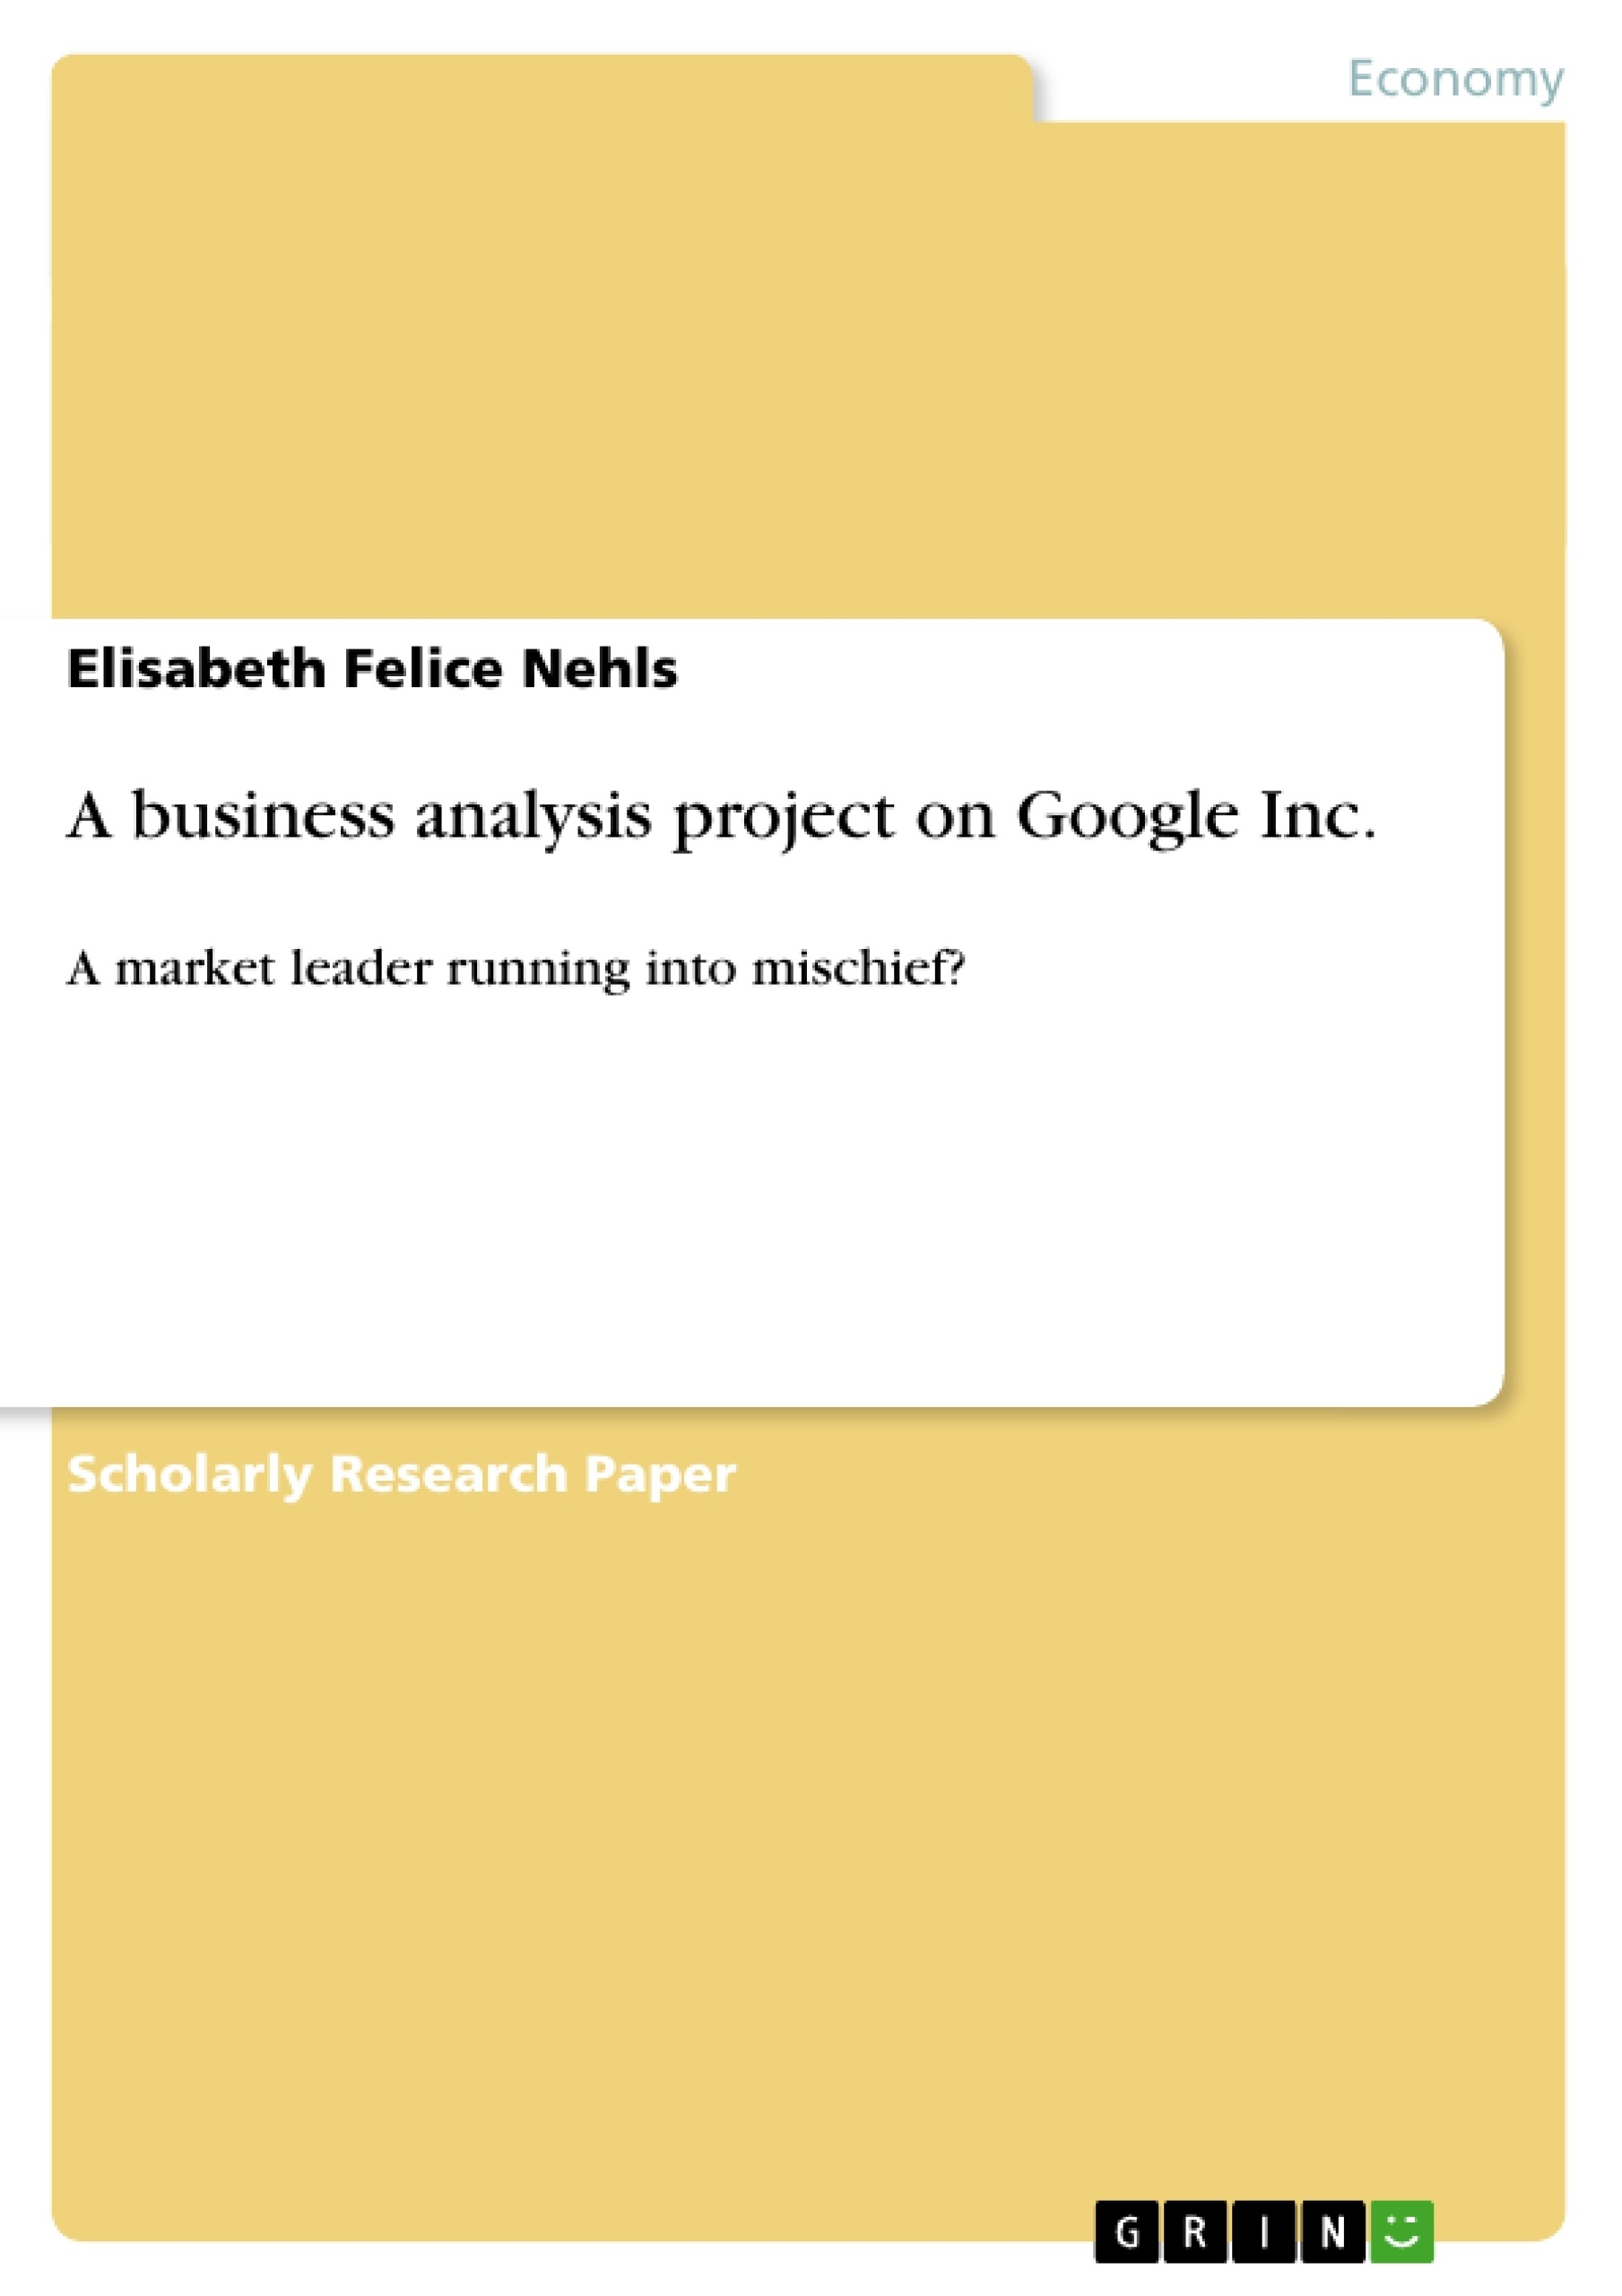 Title: A business analysis project on Google Inc.